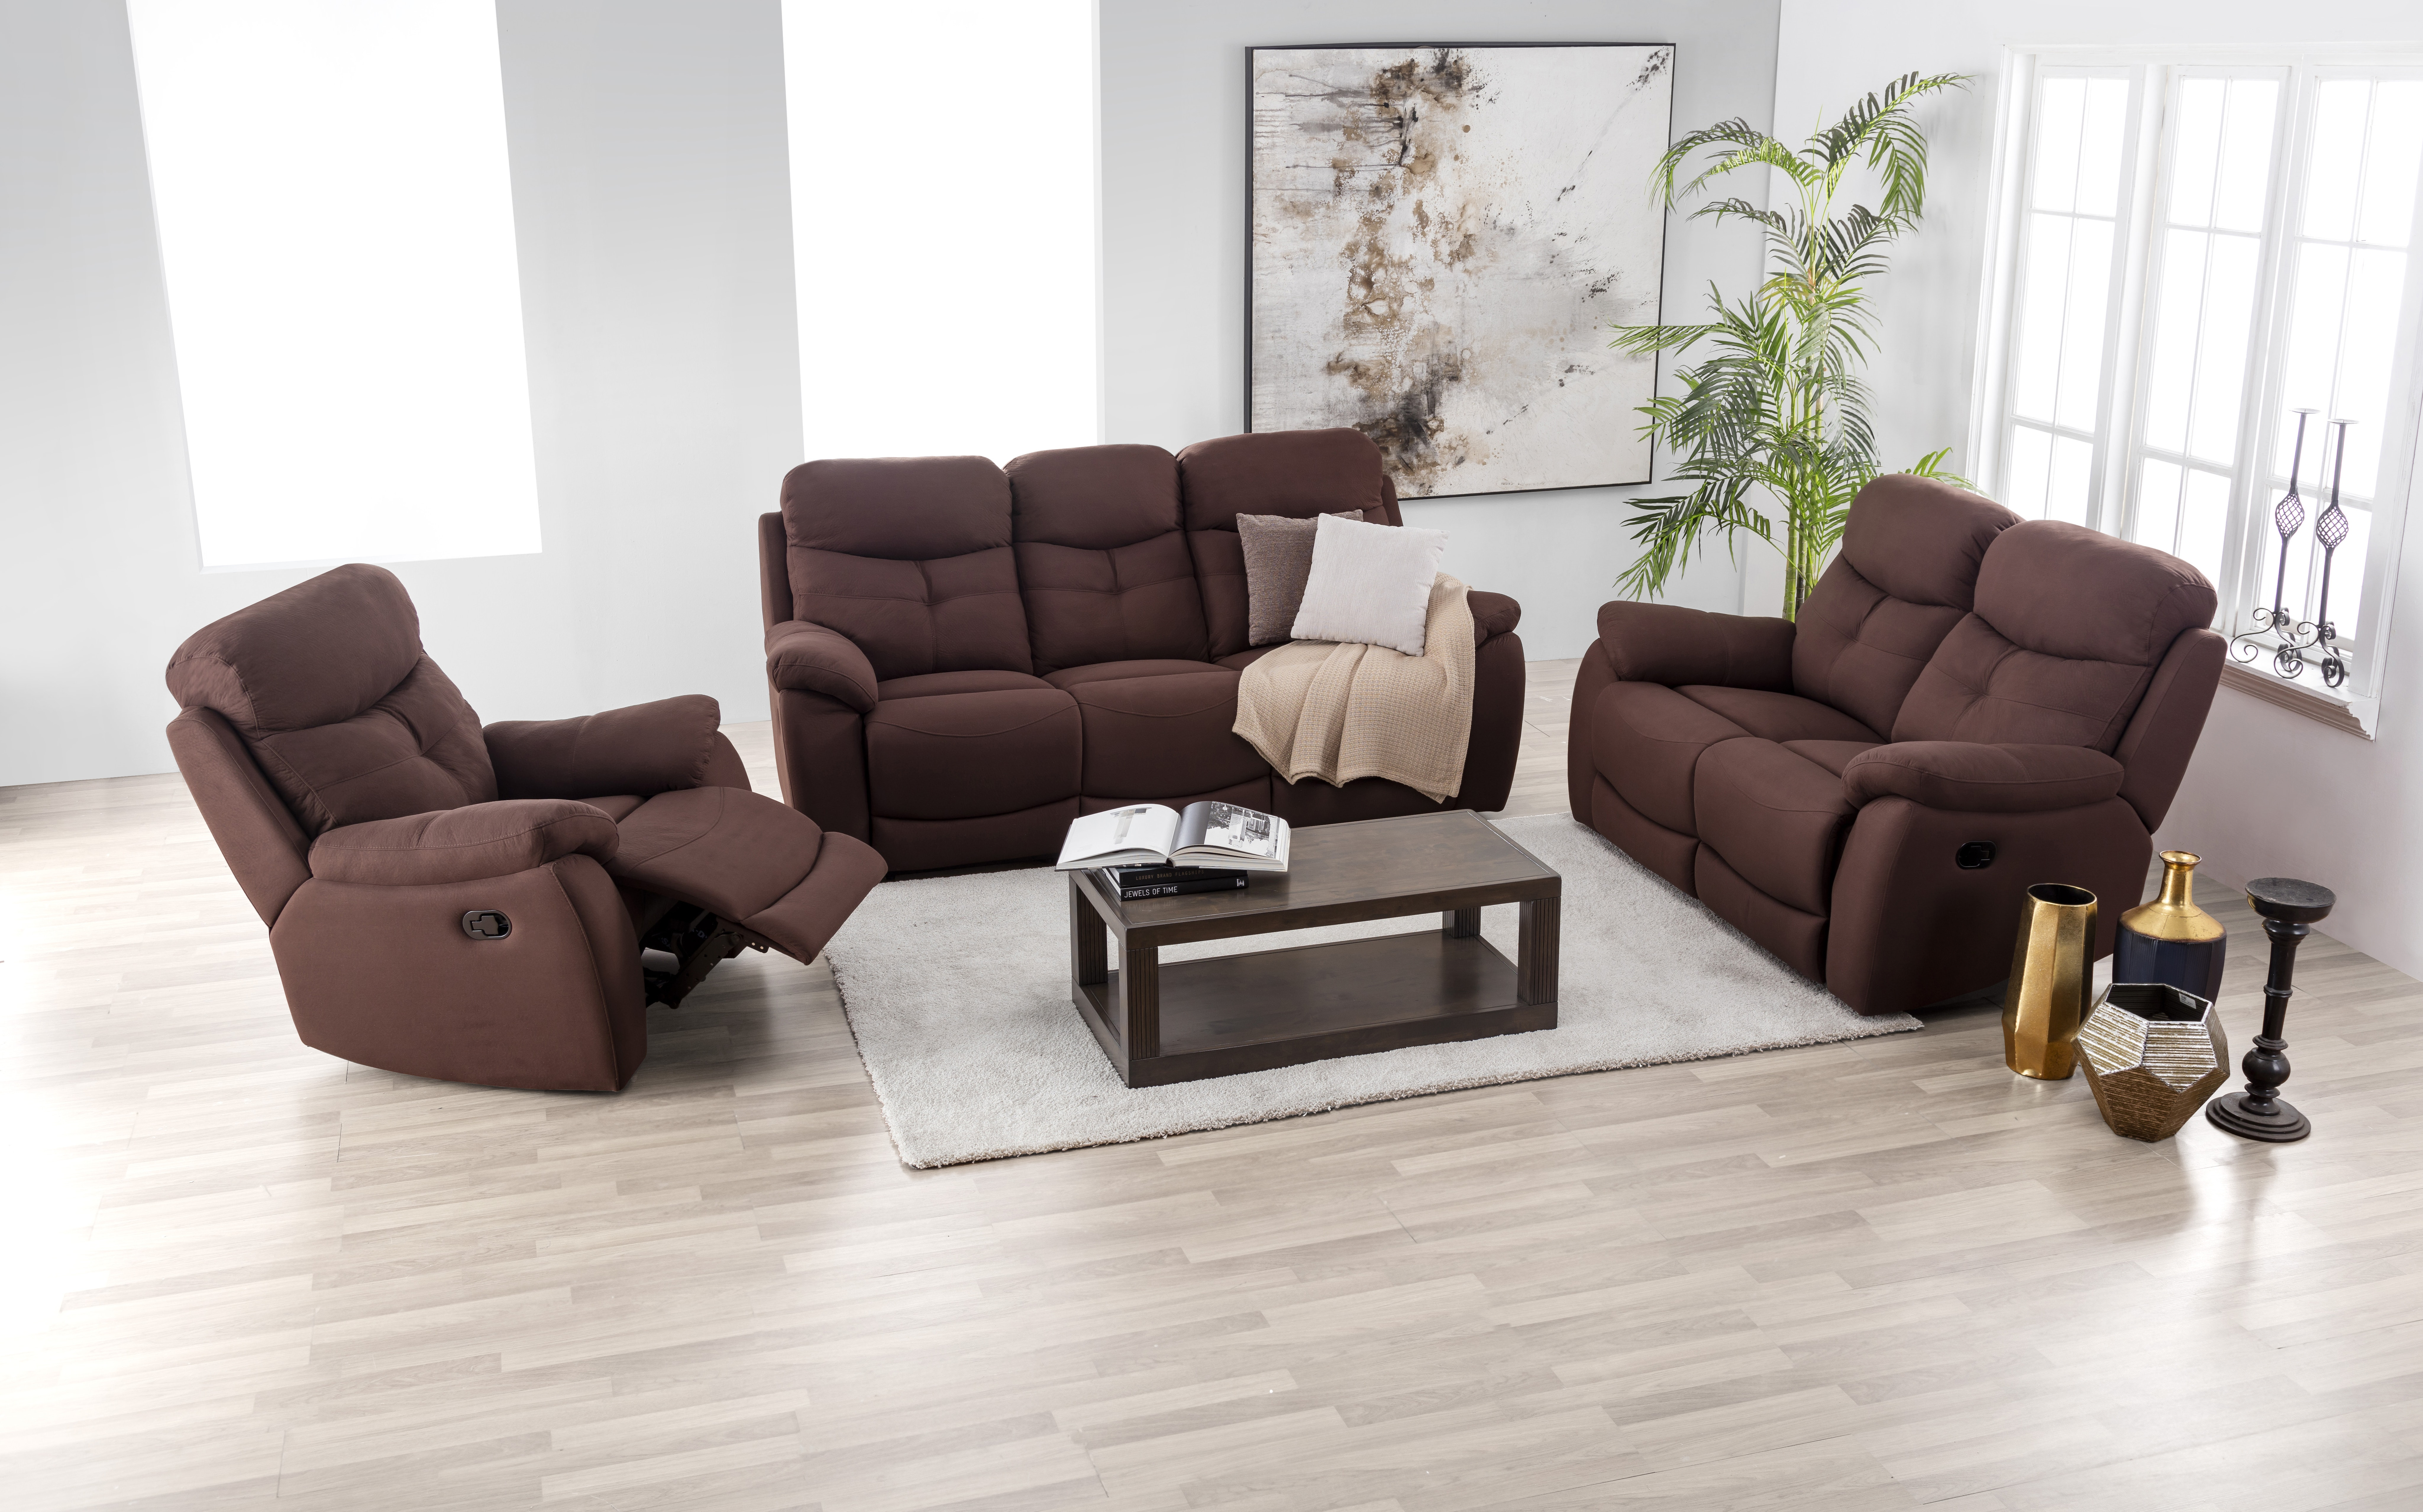 lazio fabric 3 2 seater recliner sofa set harvey norman malaysia rh harveynorman com my  fabric reclining sofa and loveseat set